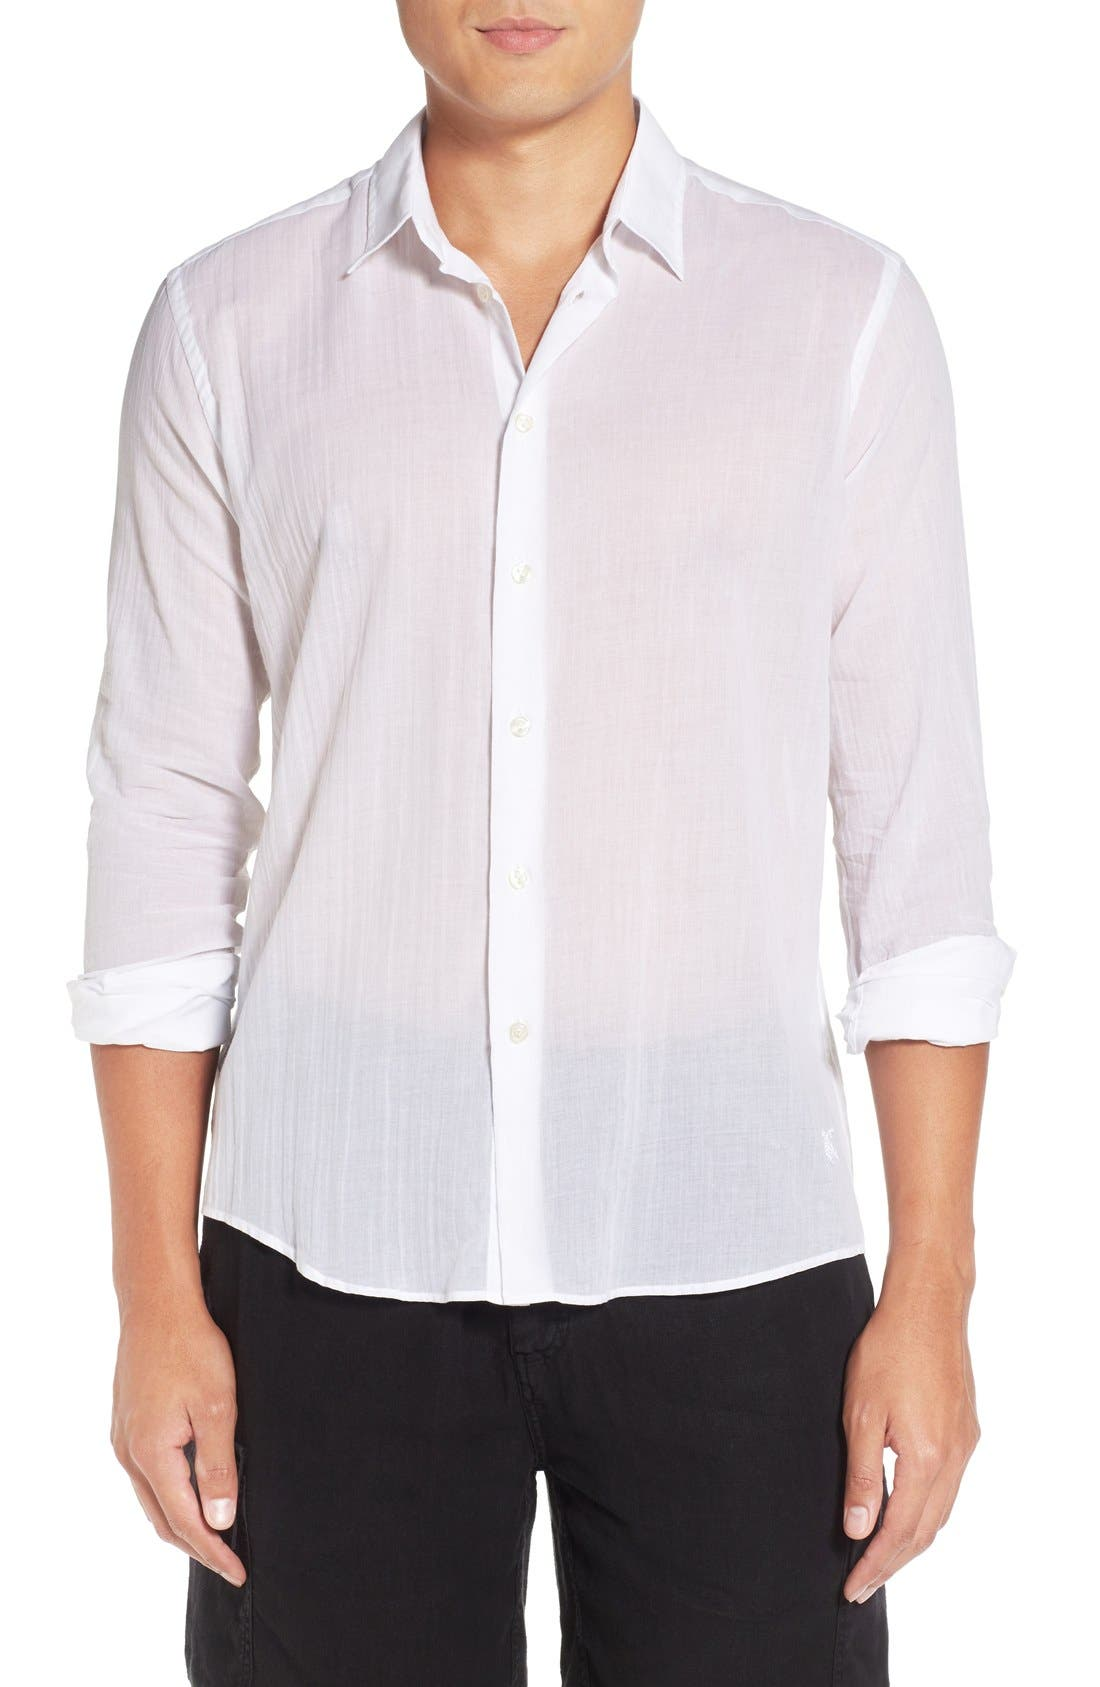 Alternate Image 1 Selected - Vilebrequin Cotton Voile Sport Shirt